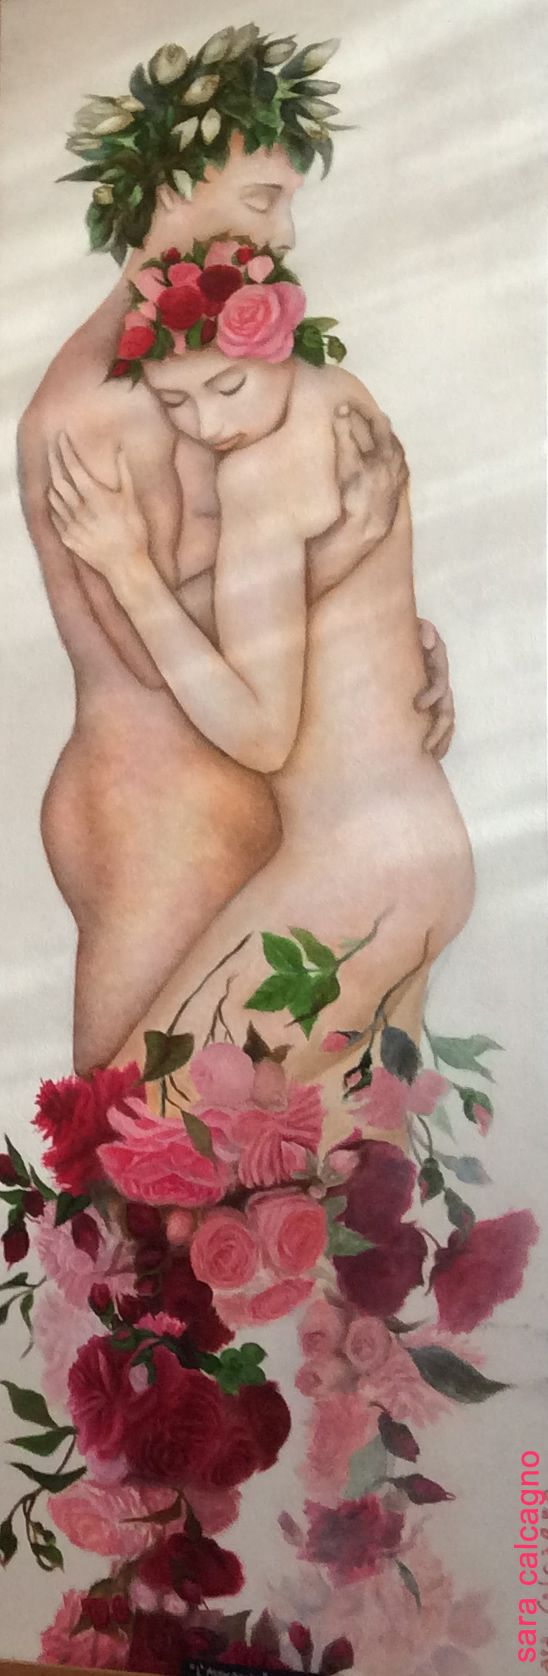 Queens of Flowers. The Embrace, oil on panel, 150 x 50 cm, by Sara Calcagno, italian painter